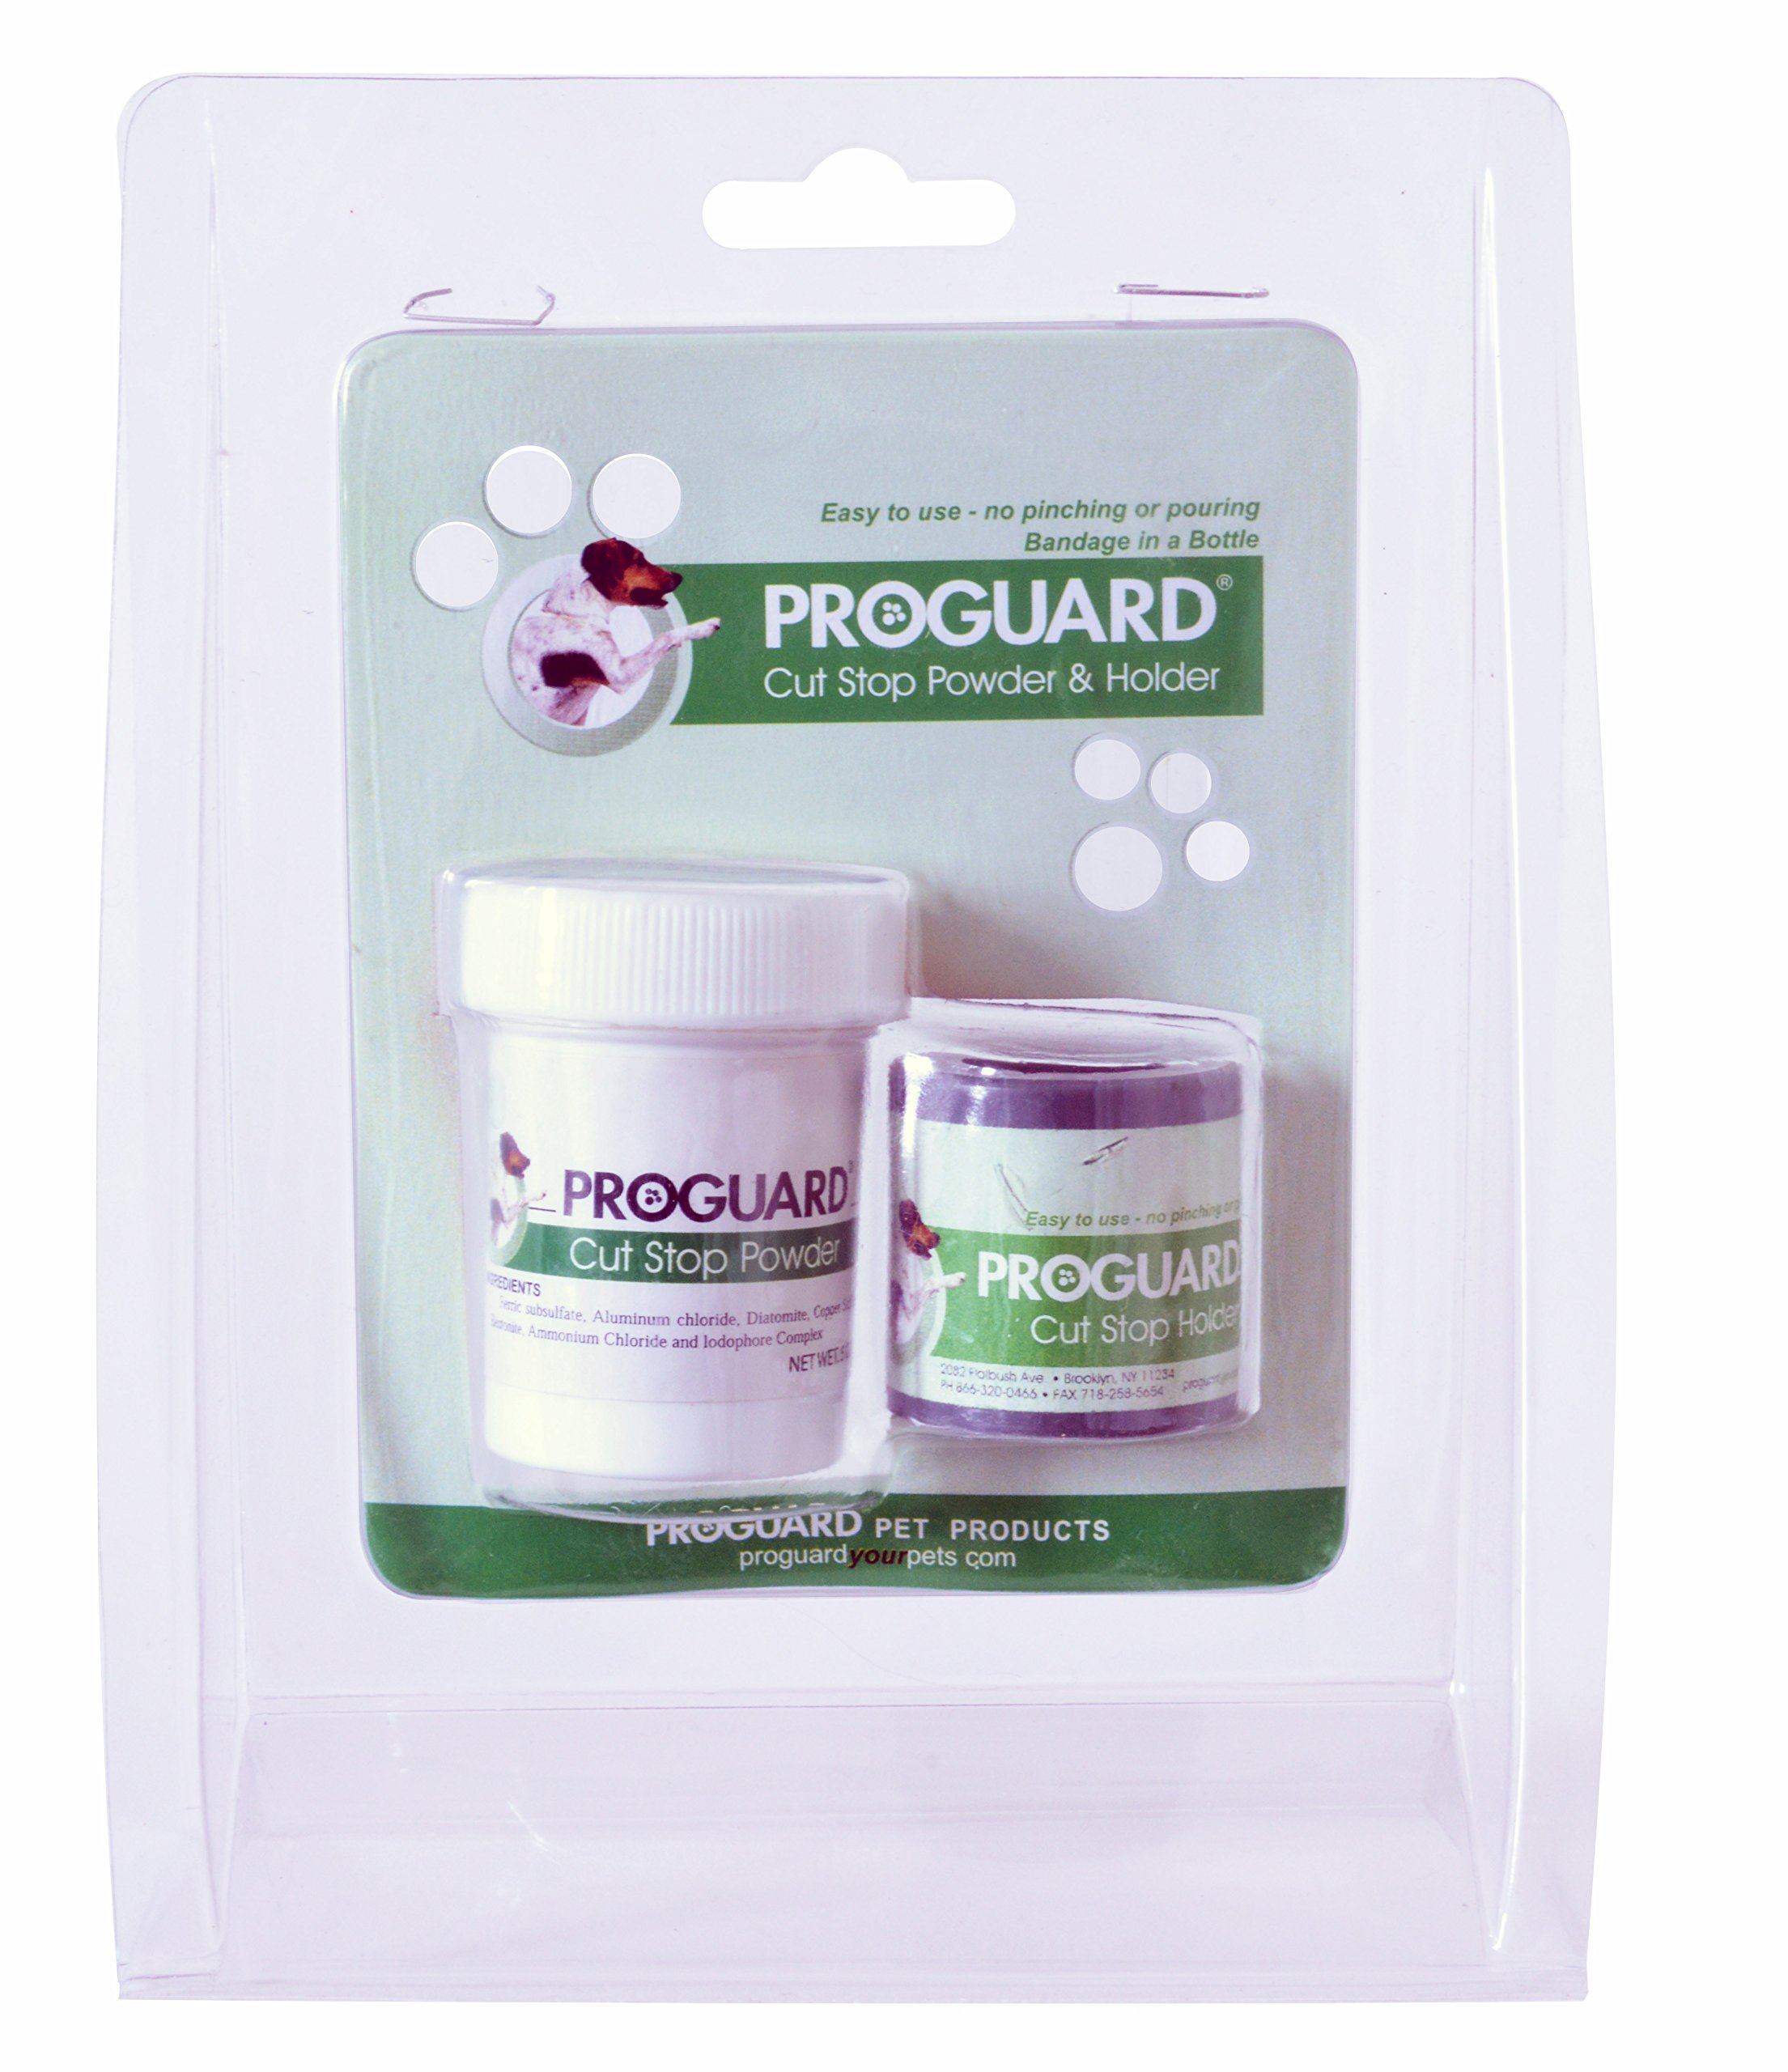 Cut-Stop Powder and Holder by Proguard Pets